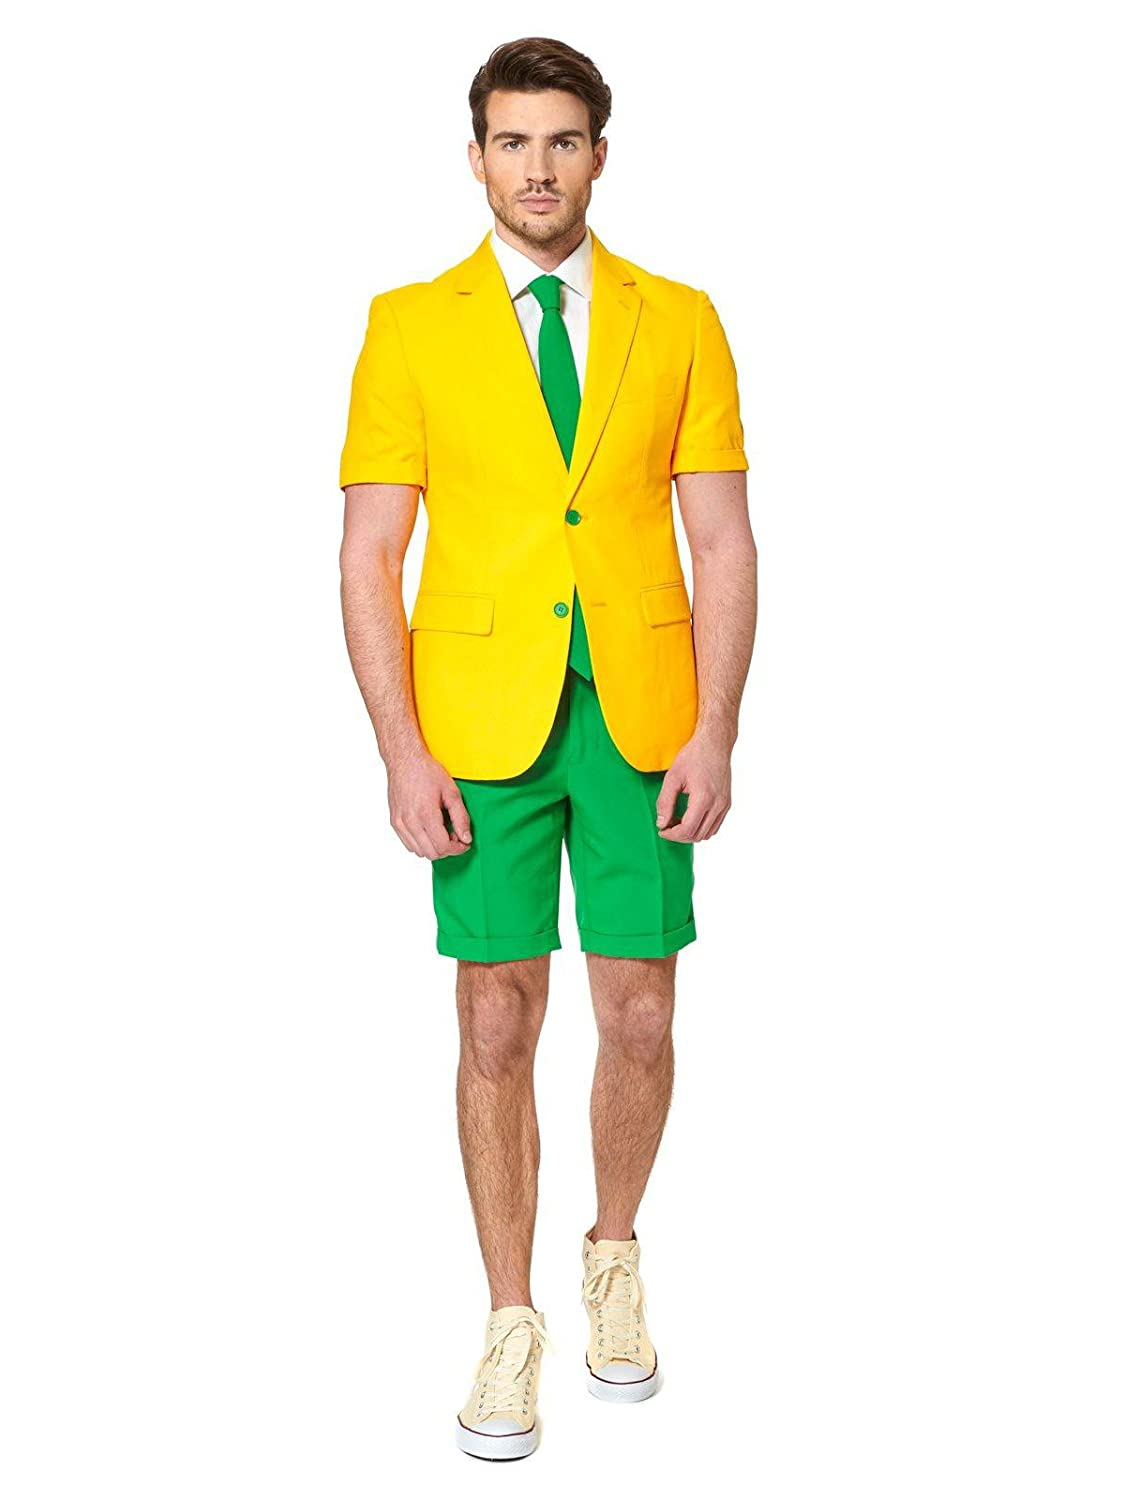 Generique - - - Opposuits Sommeranzug Grün and Gold XL (58) 1edf7d